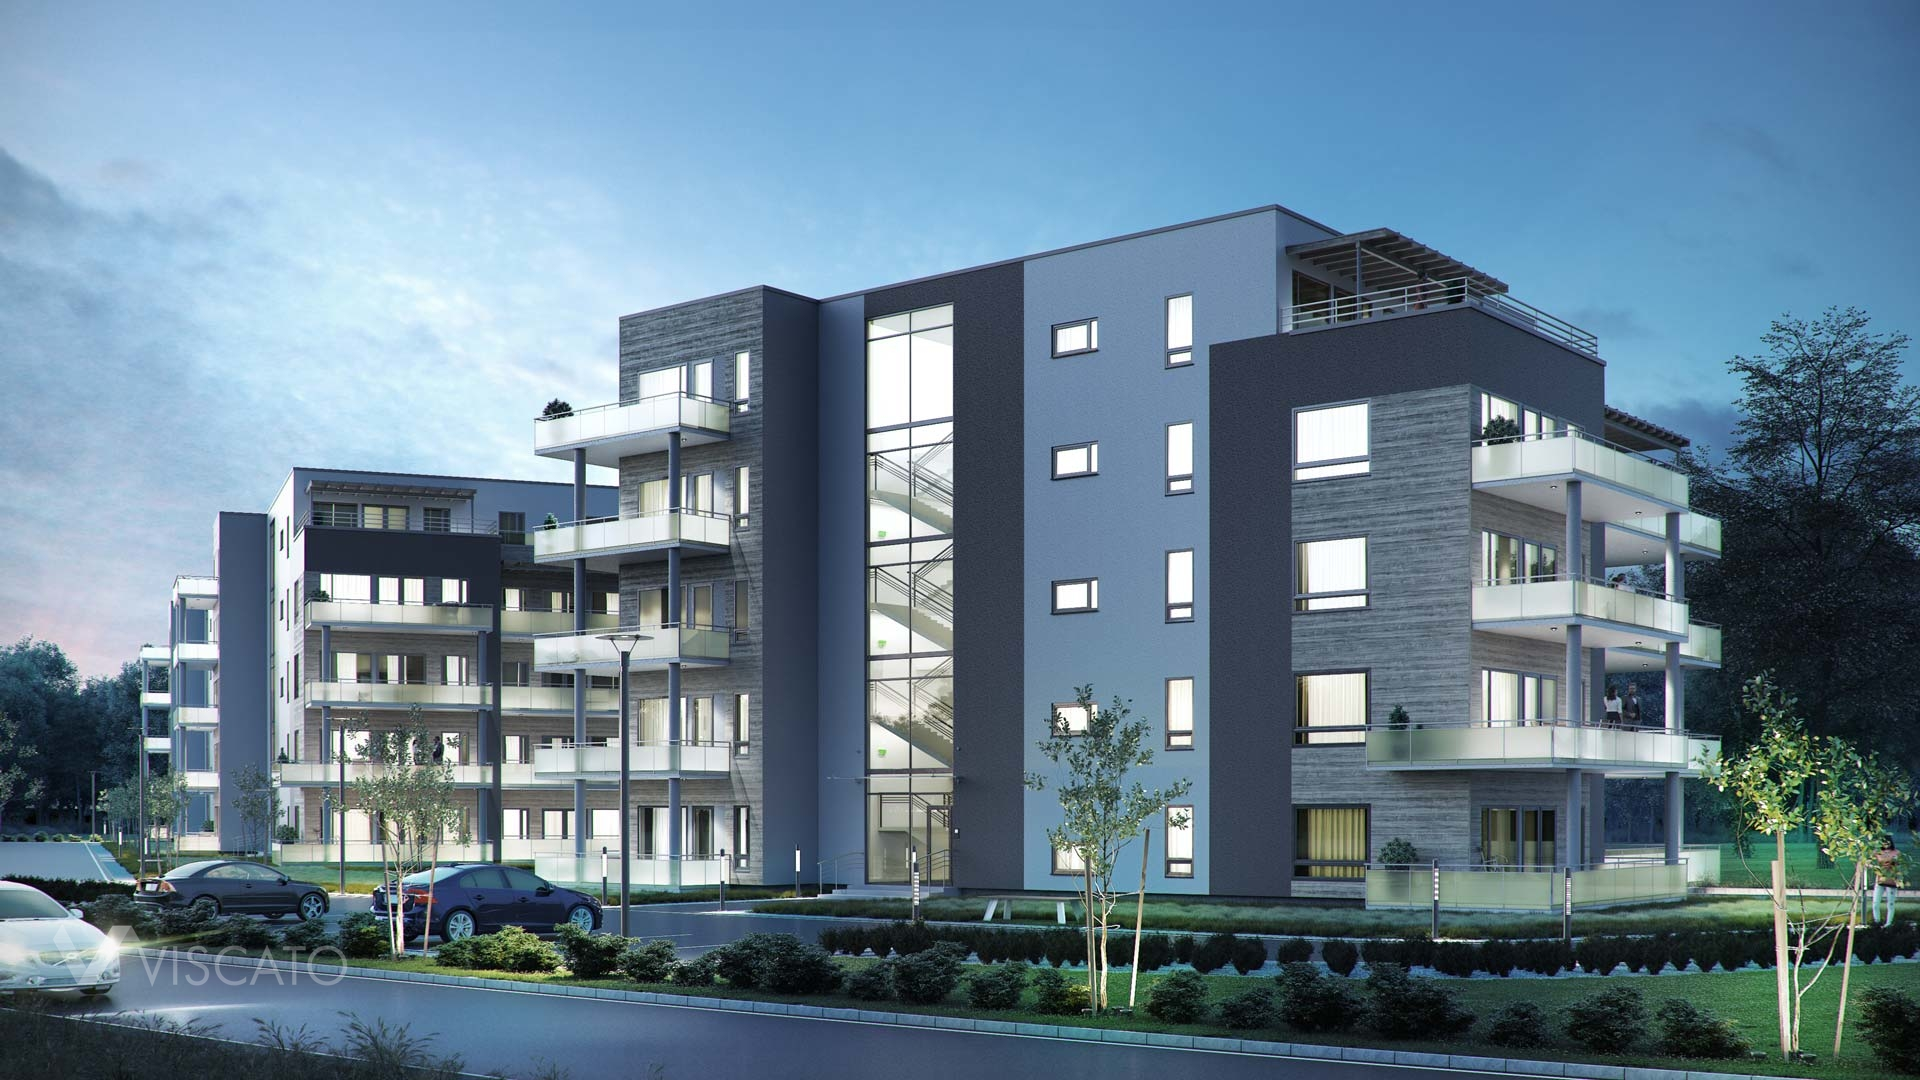 3D rendering of a block of flats in Norway- parking lot view